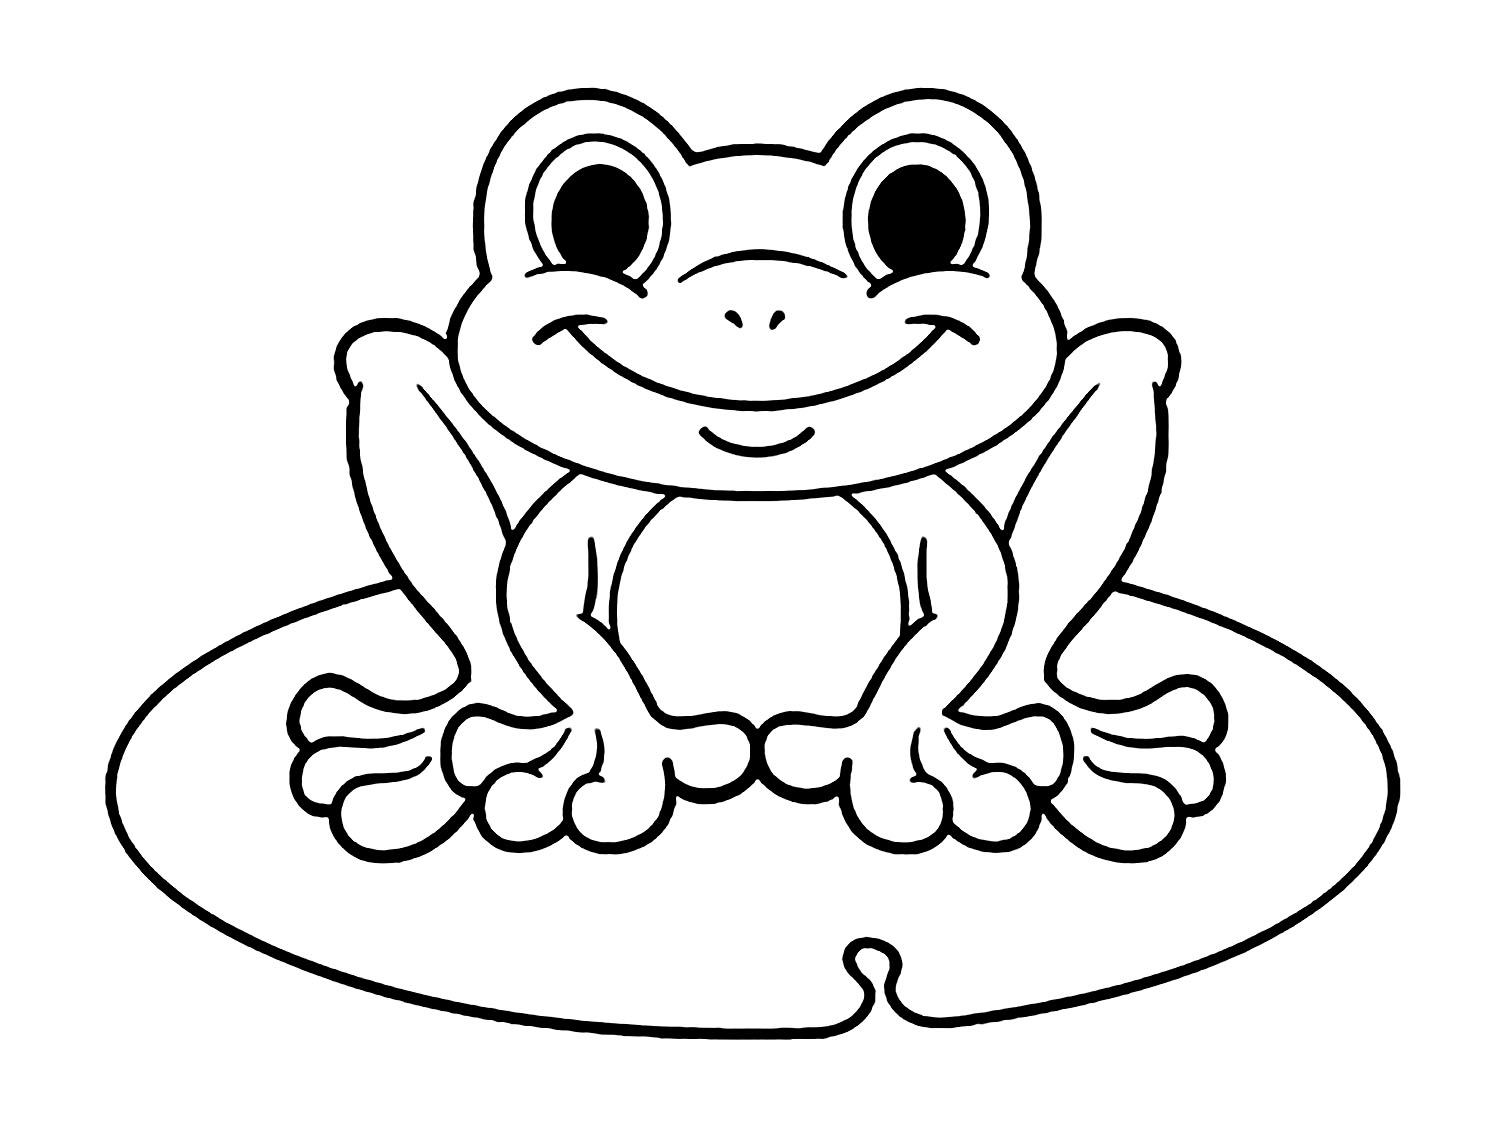 coloring images of frog free printable frog coloring pages for kids cool2bkids of images coloring frog